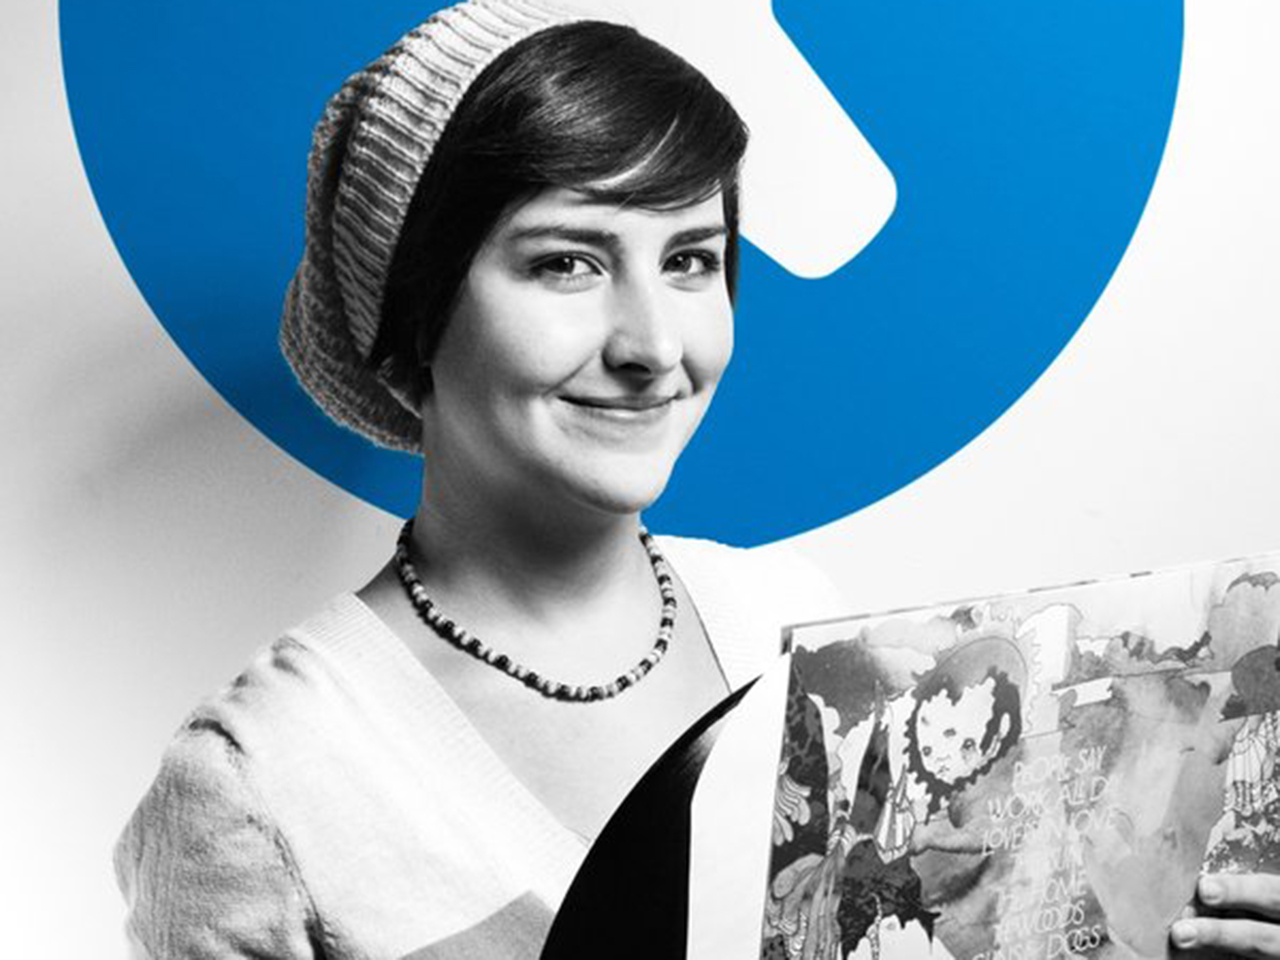 Kristen holding a vinyl in front of the iFixit logo